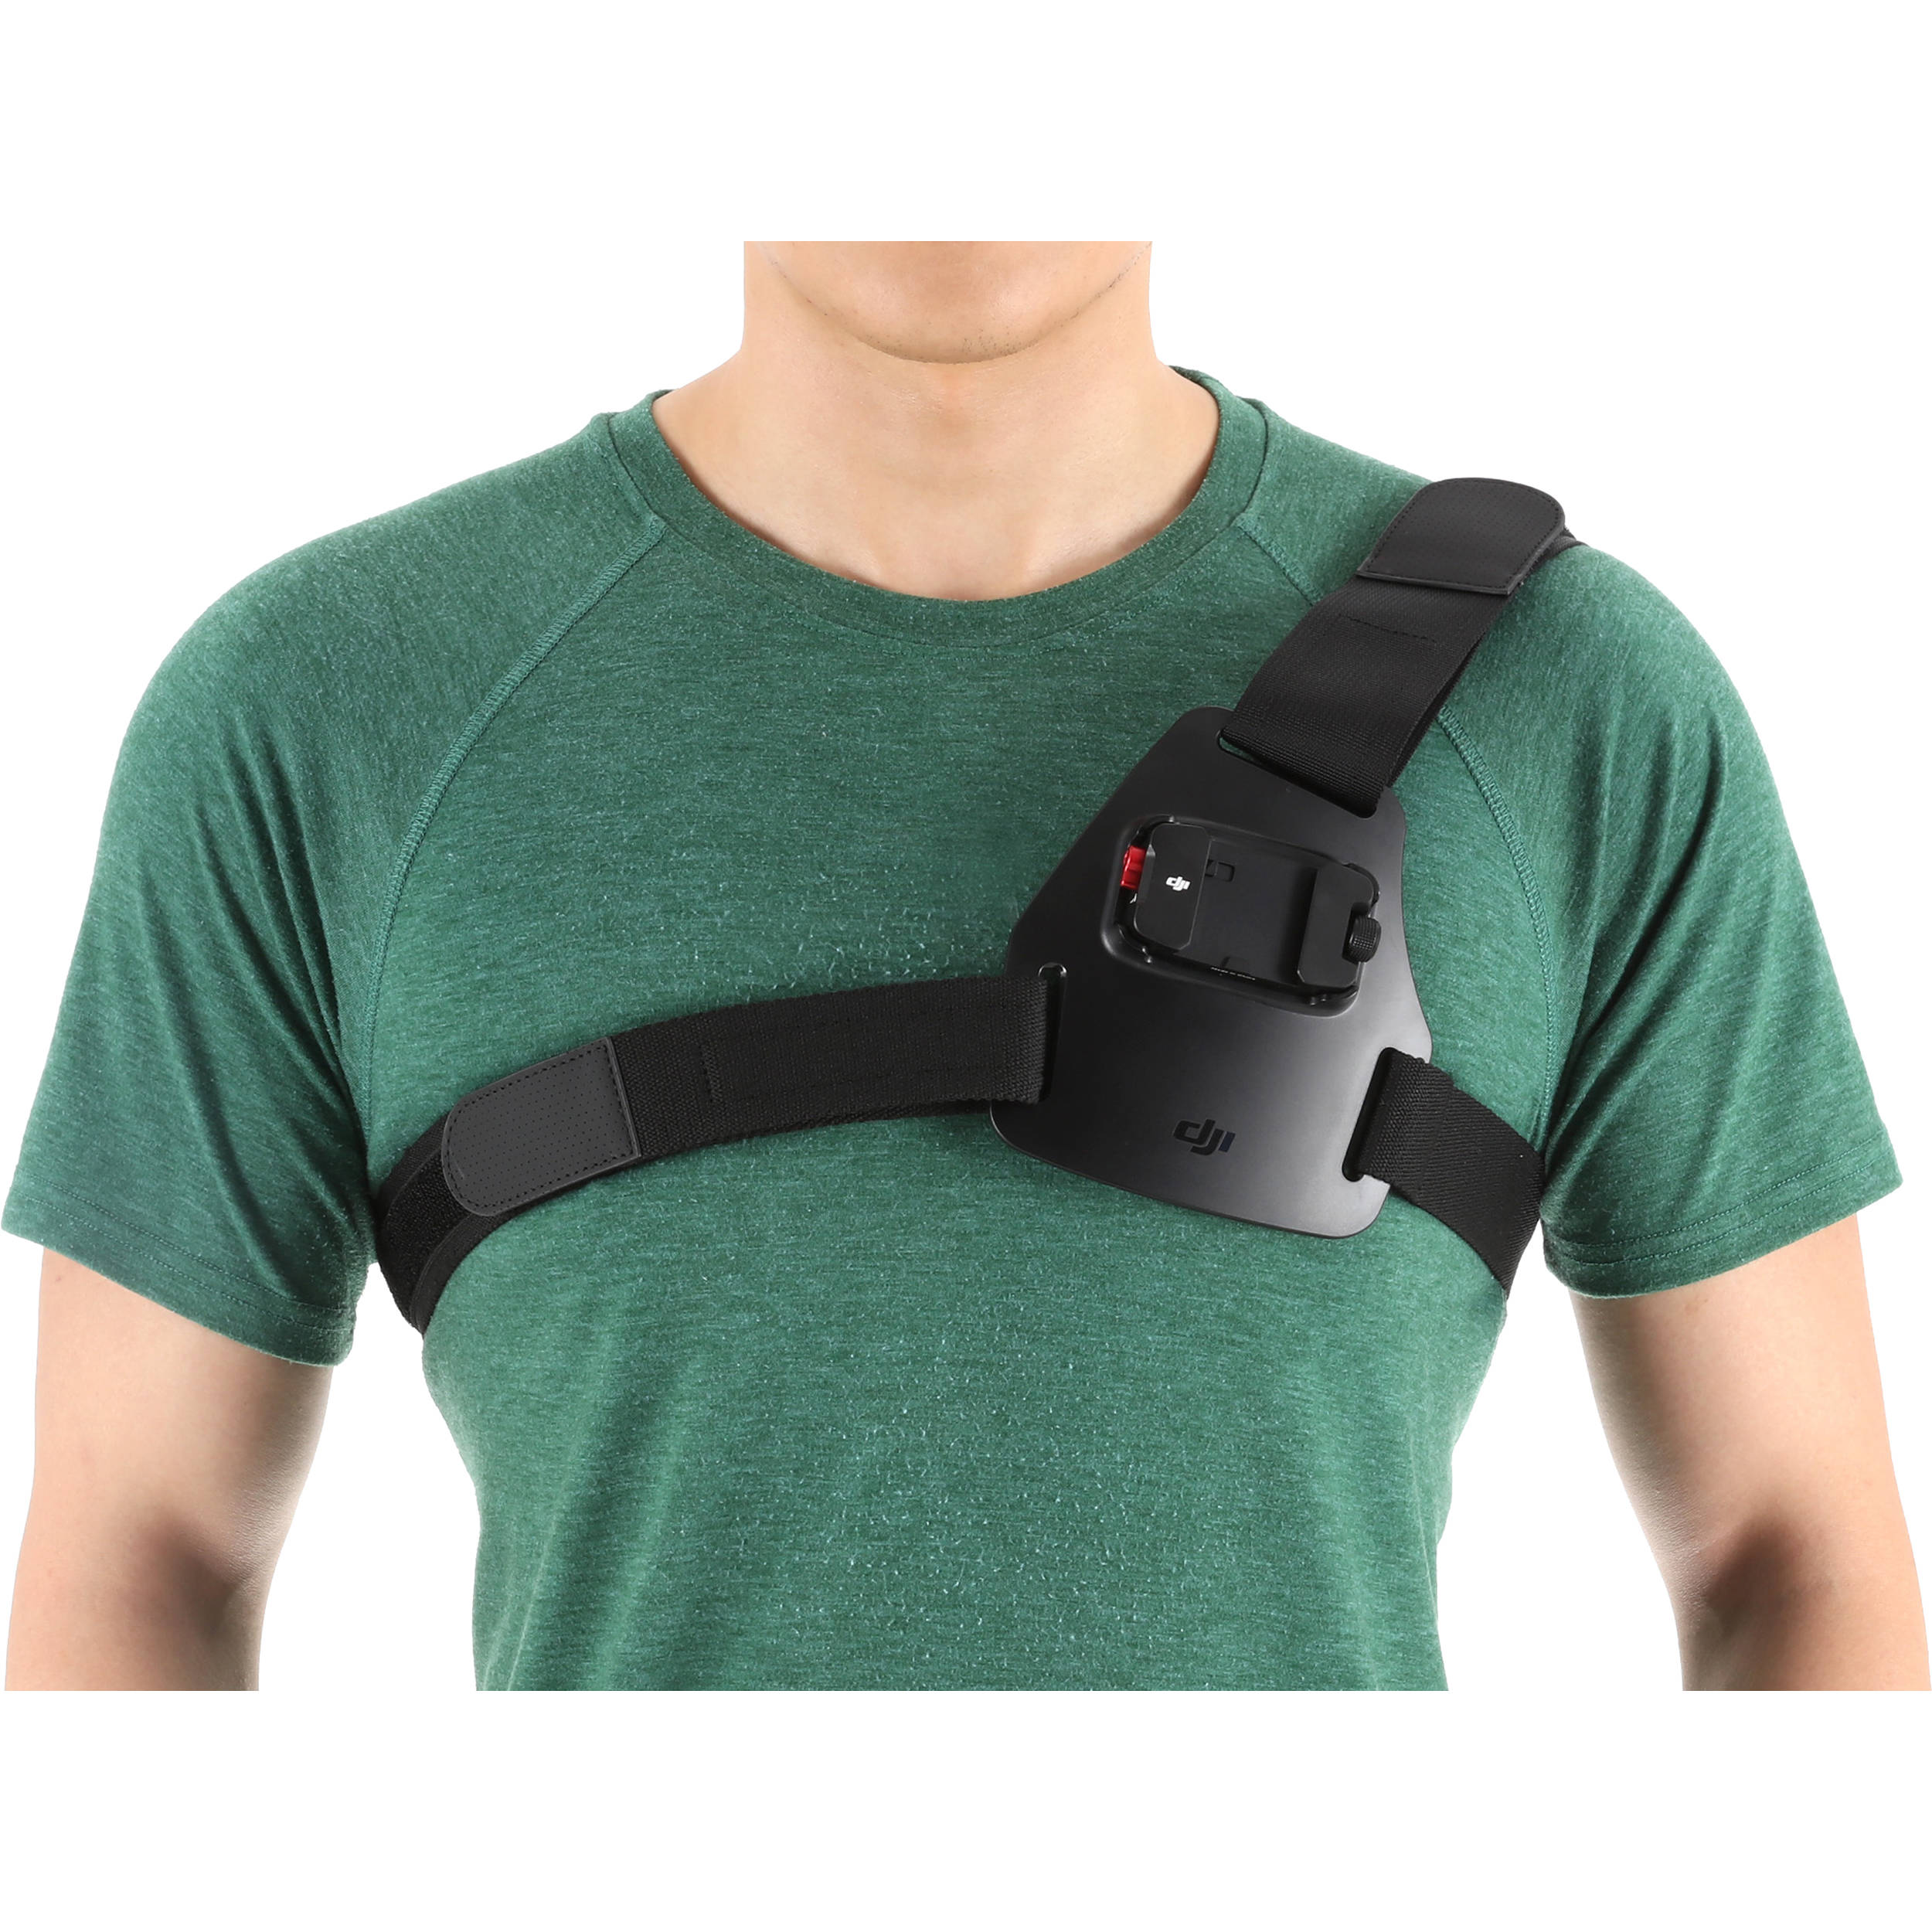 info for 9948d 10073 DJI Osmo Chest Strap Mount